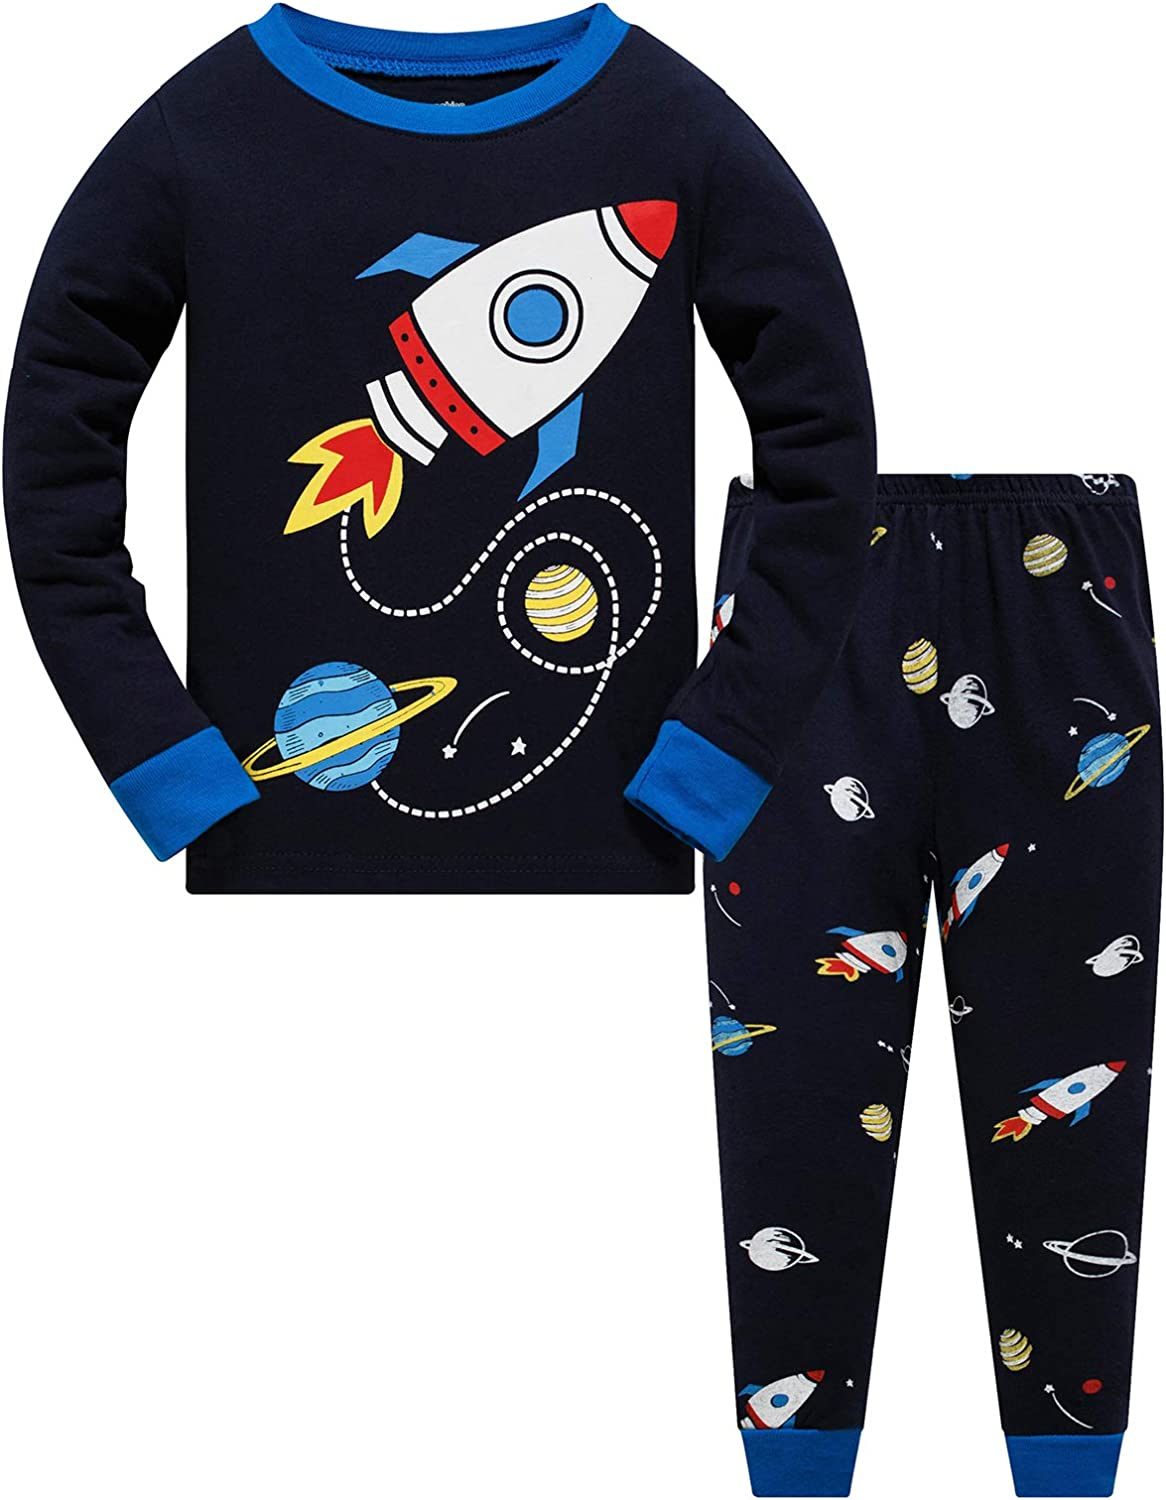 Little Boy Space Pajama Set 100/% Cotton Dinosaur Sleepwear Long Sleeve Pjs 3-7T